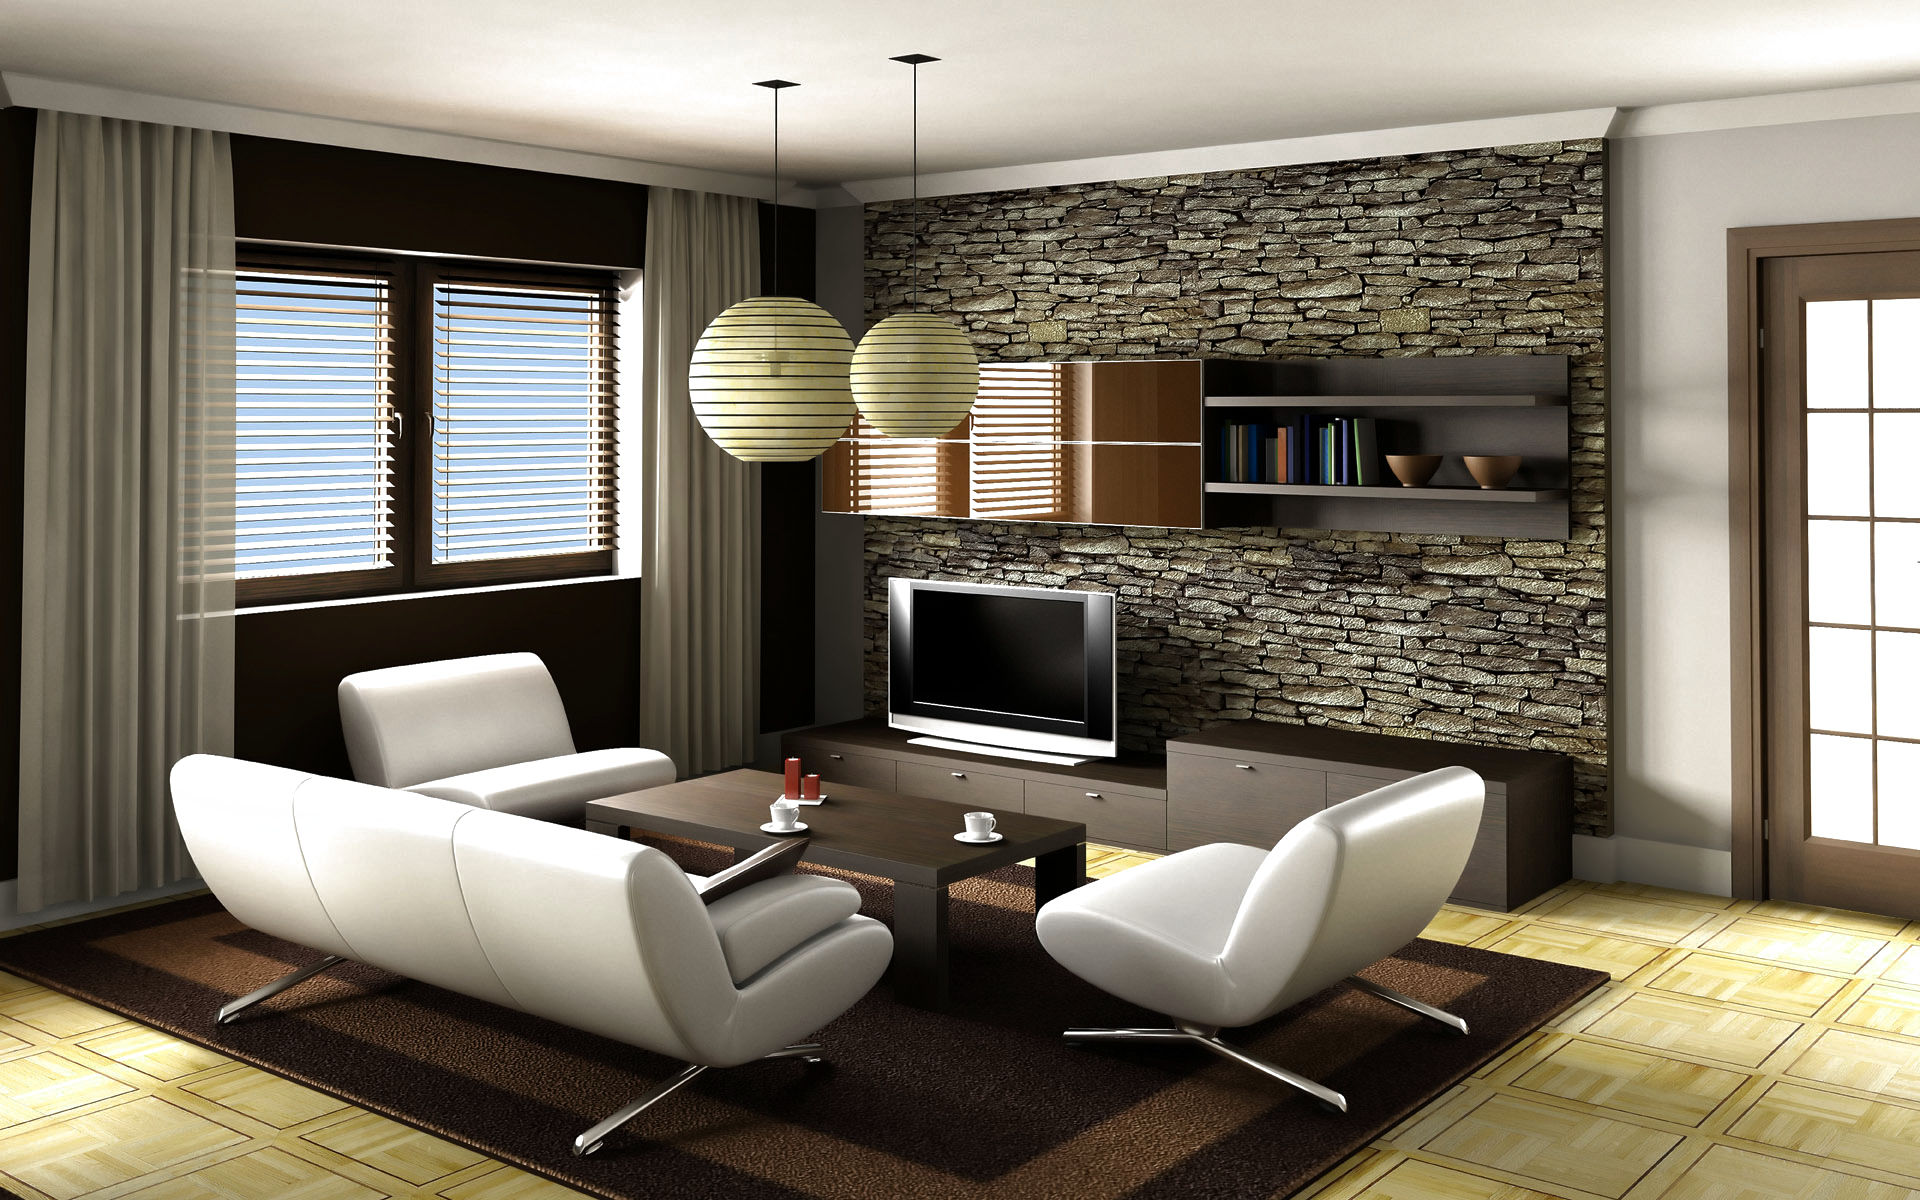 16 modern living room furniture ideas design hgnv com for Living furniture ideas